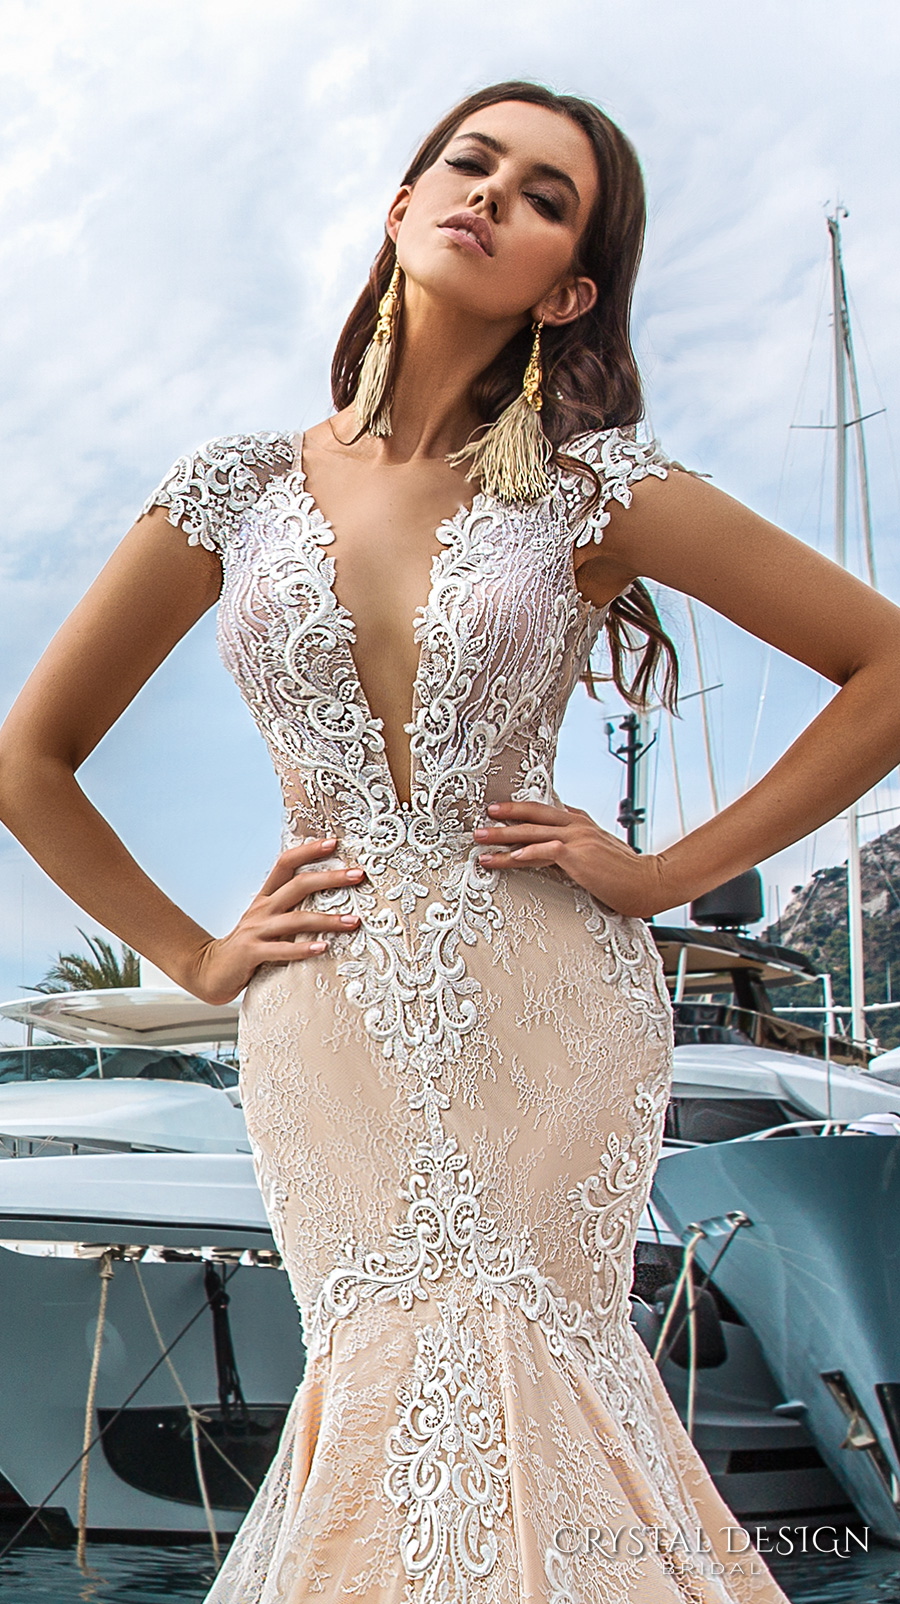 crystal design 2017 bridal cap sleeves deep plunging v neck full embellishment ivory color sexy elegant fit and flare mermaid wedding dress low back royal long train (marchesa) zv